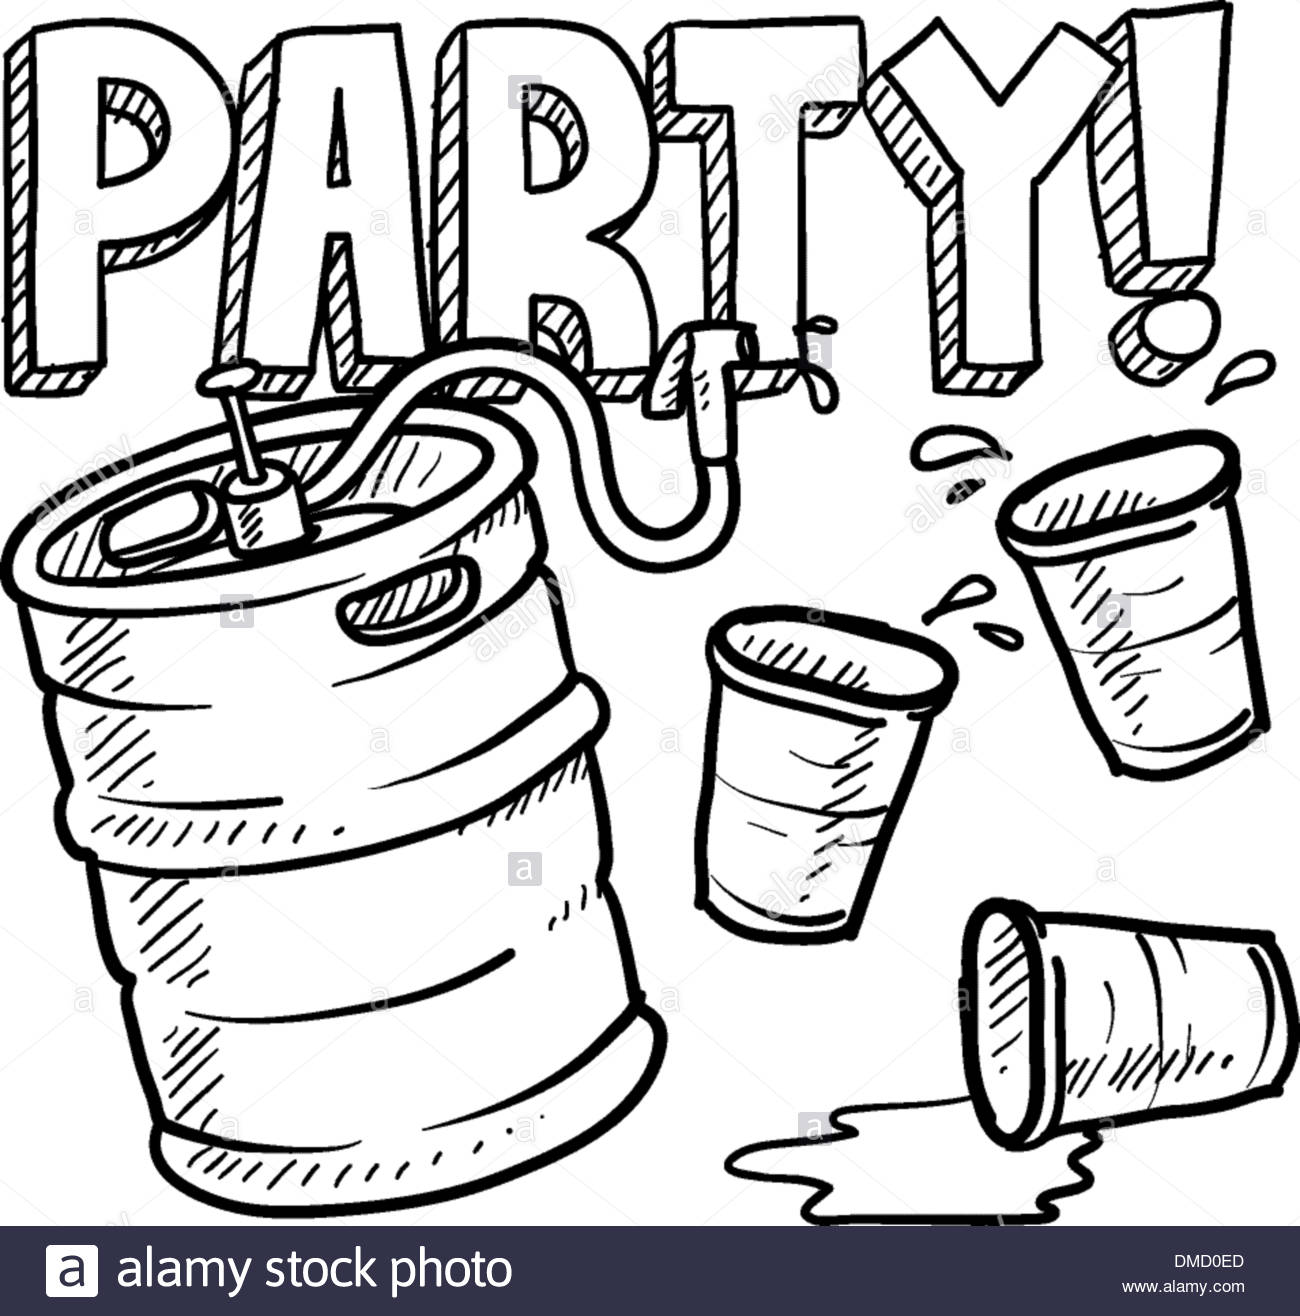 1300x1316 Keg Party Sketch Stock Vector Art Amp Illustration, Vector Image